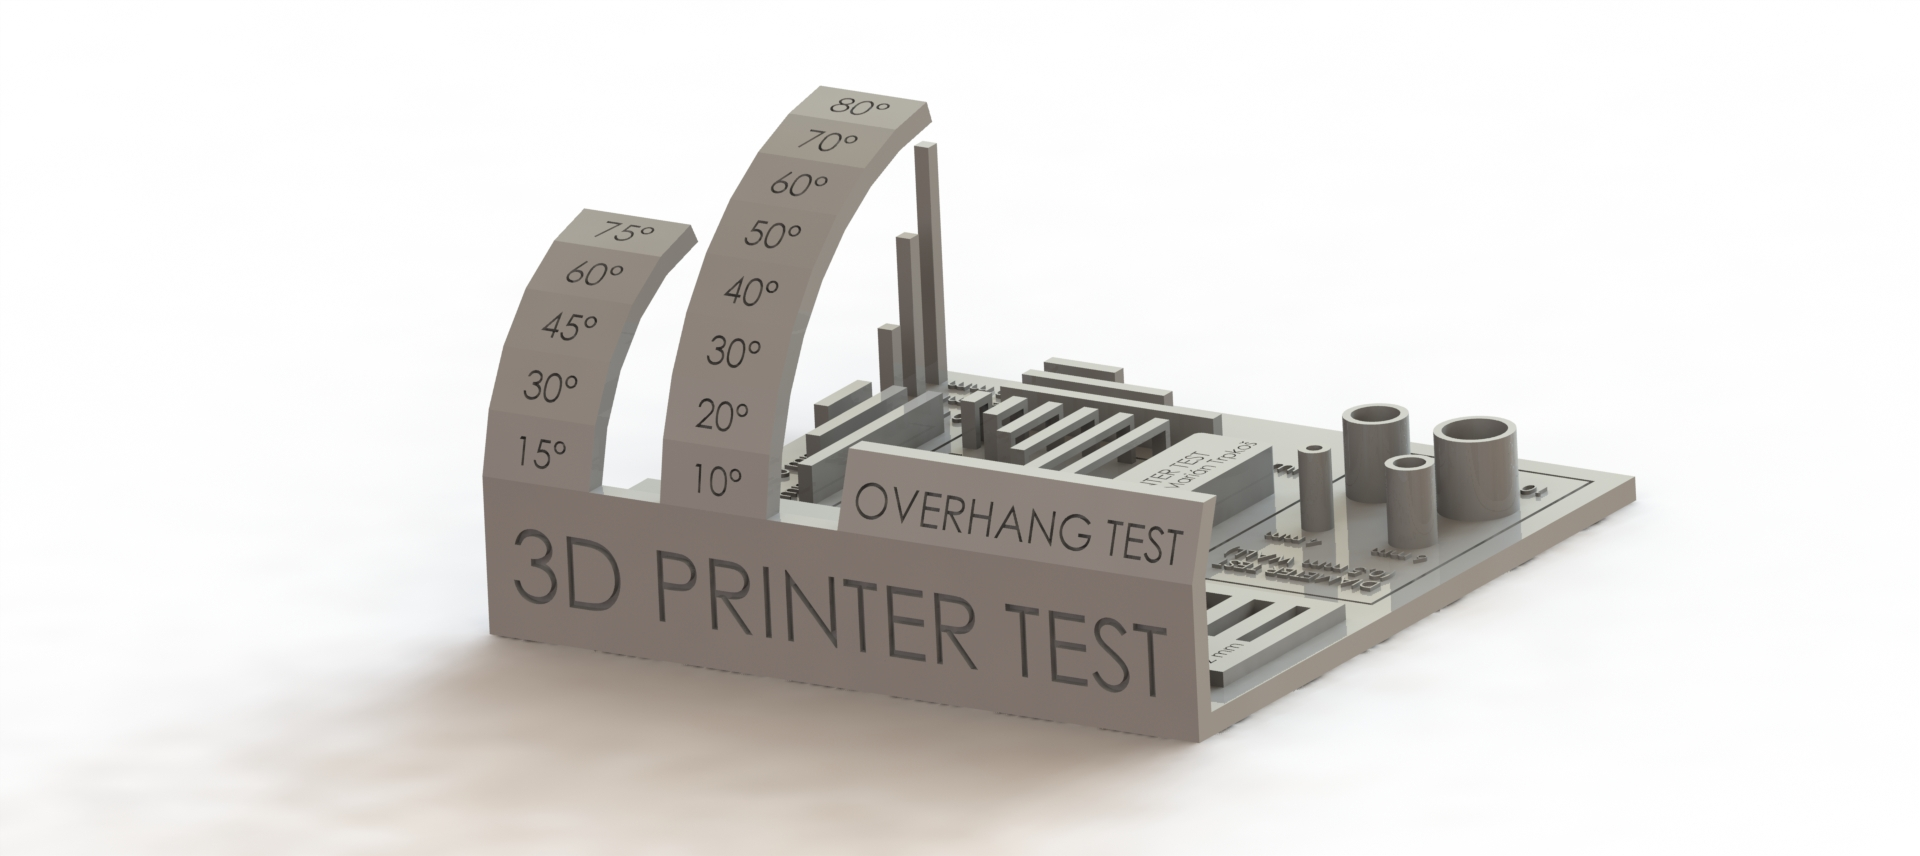 All In One 3D Printer test by majda107 - Thingiverse